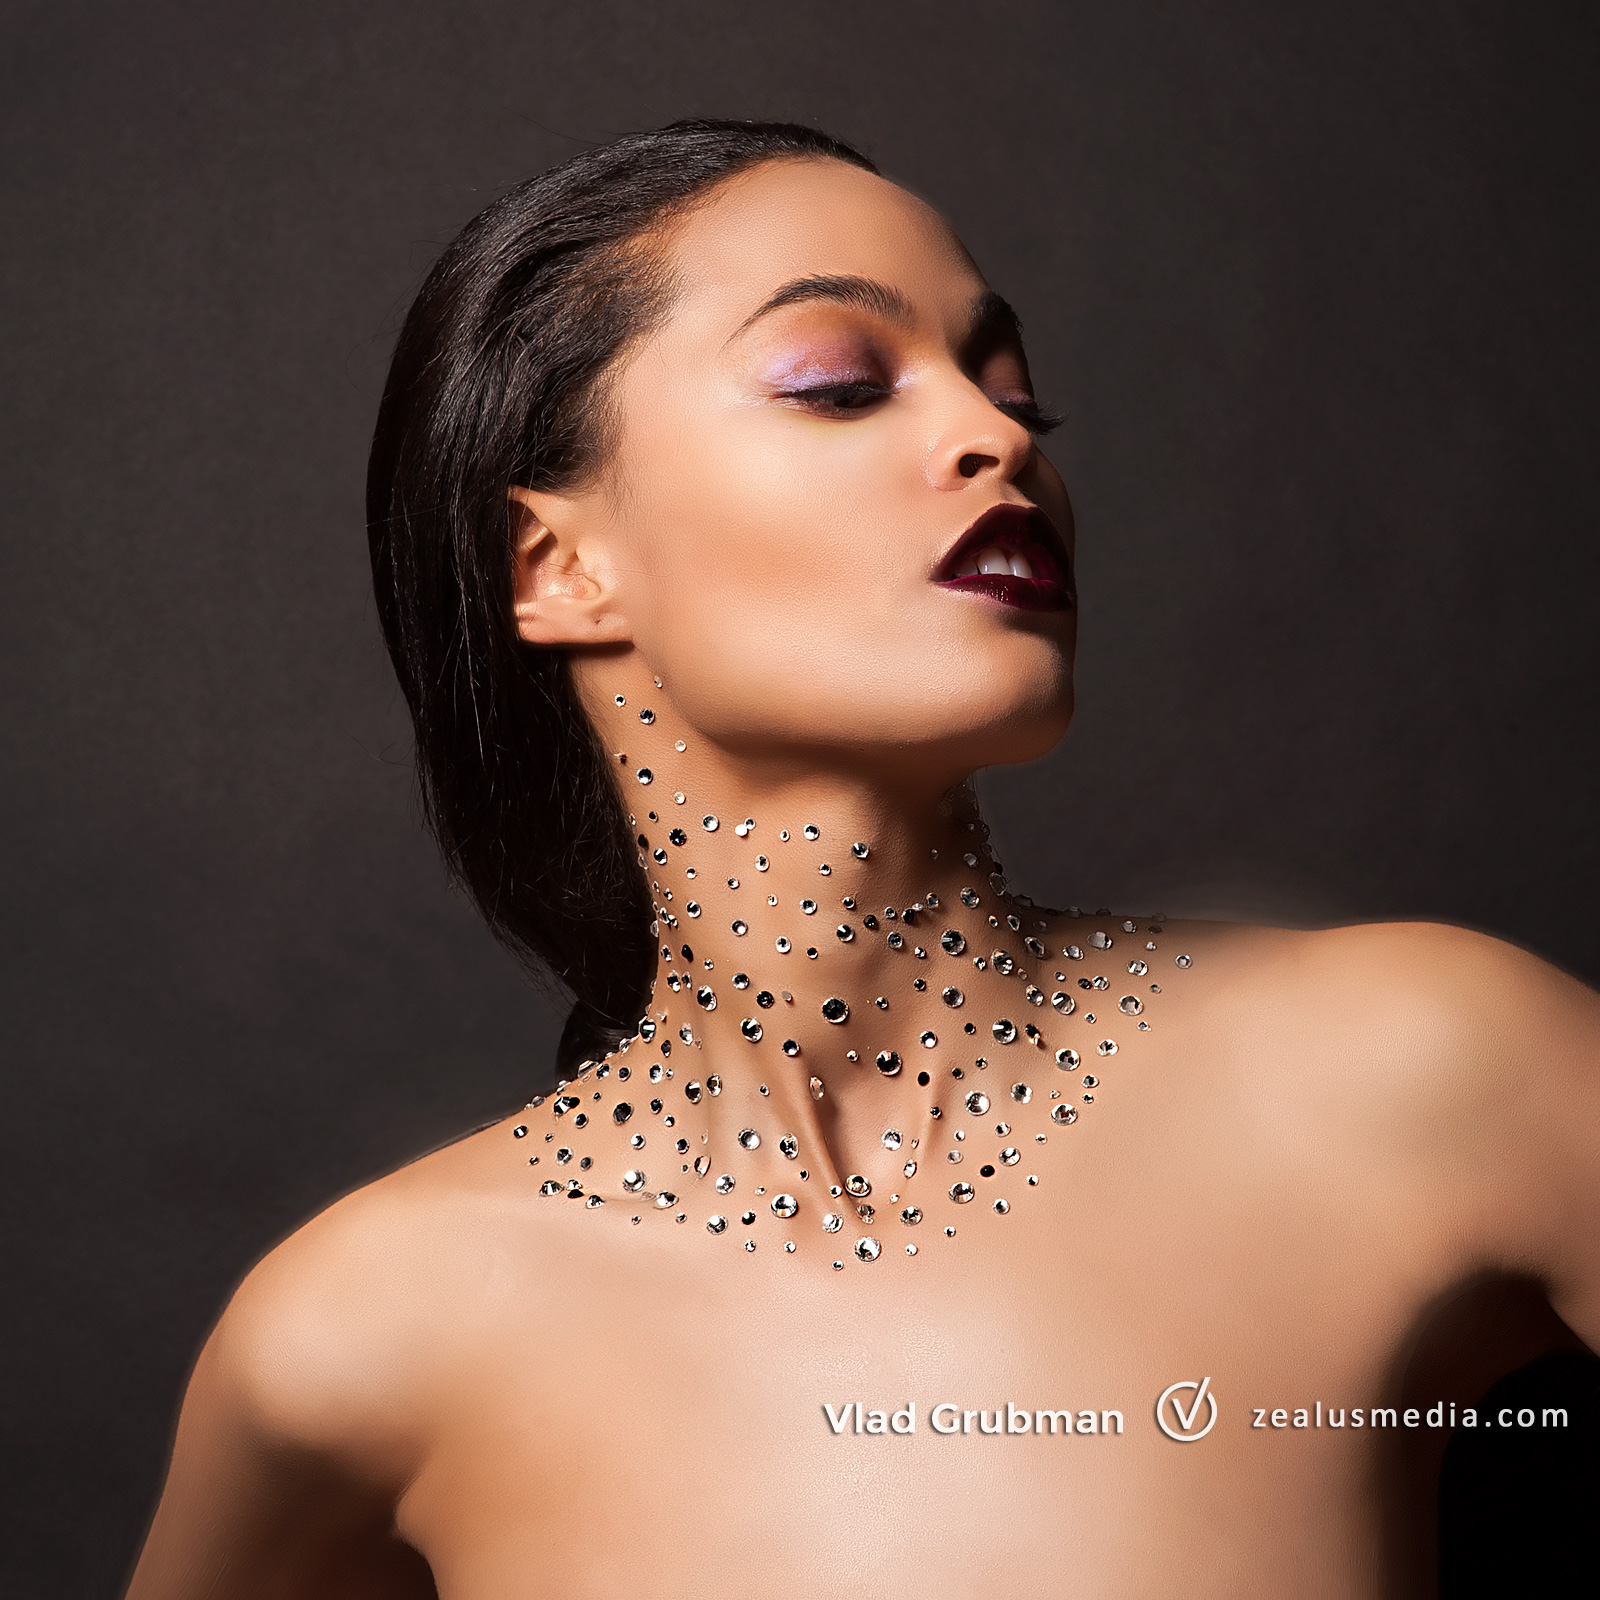 Creative Portrait With Crystals